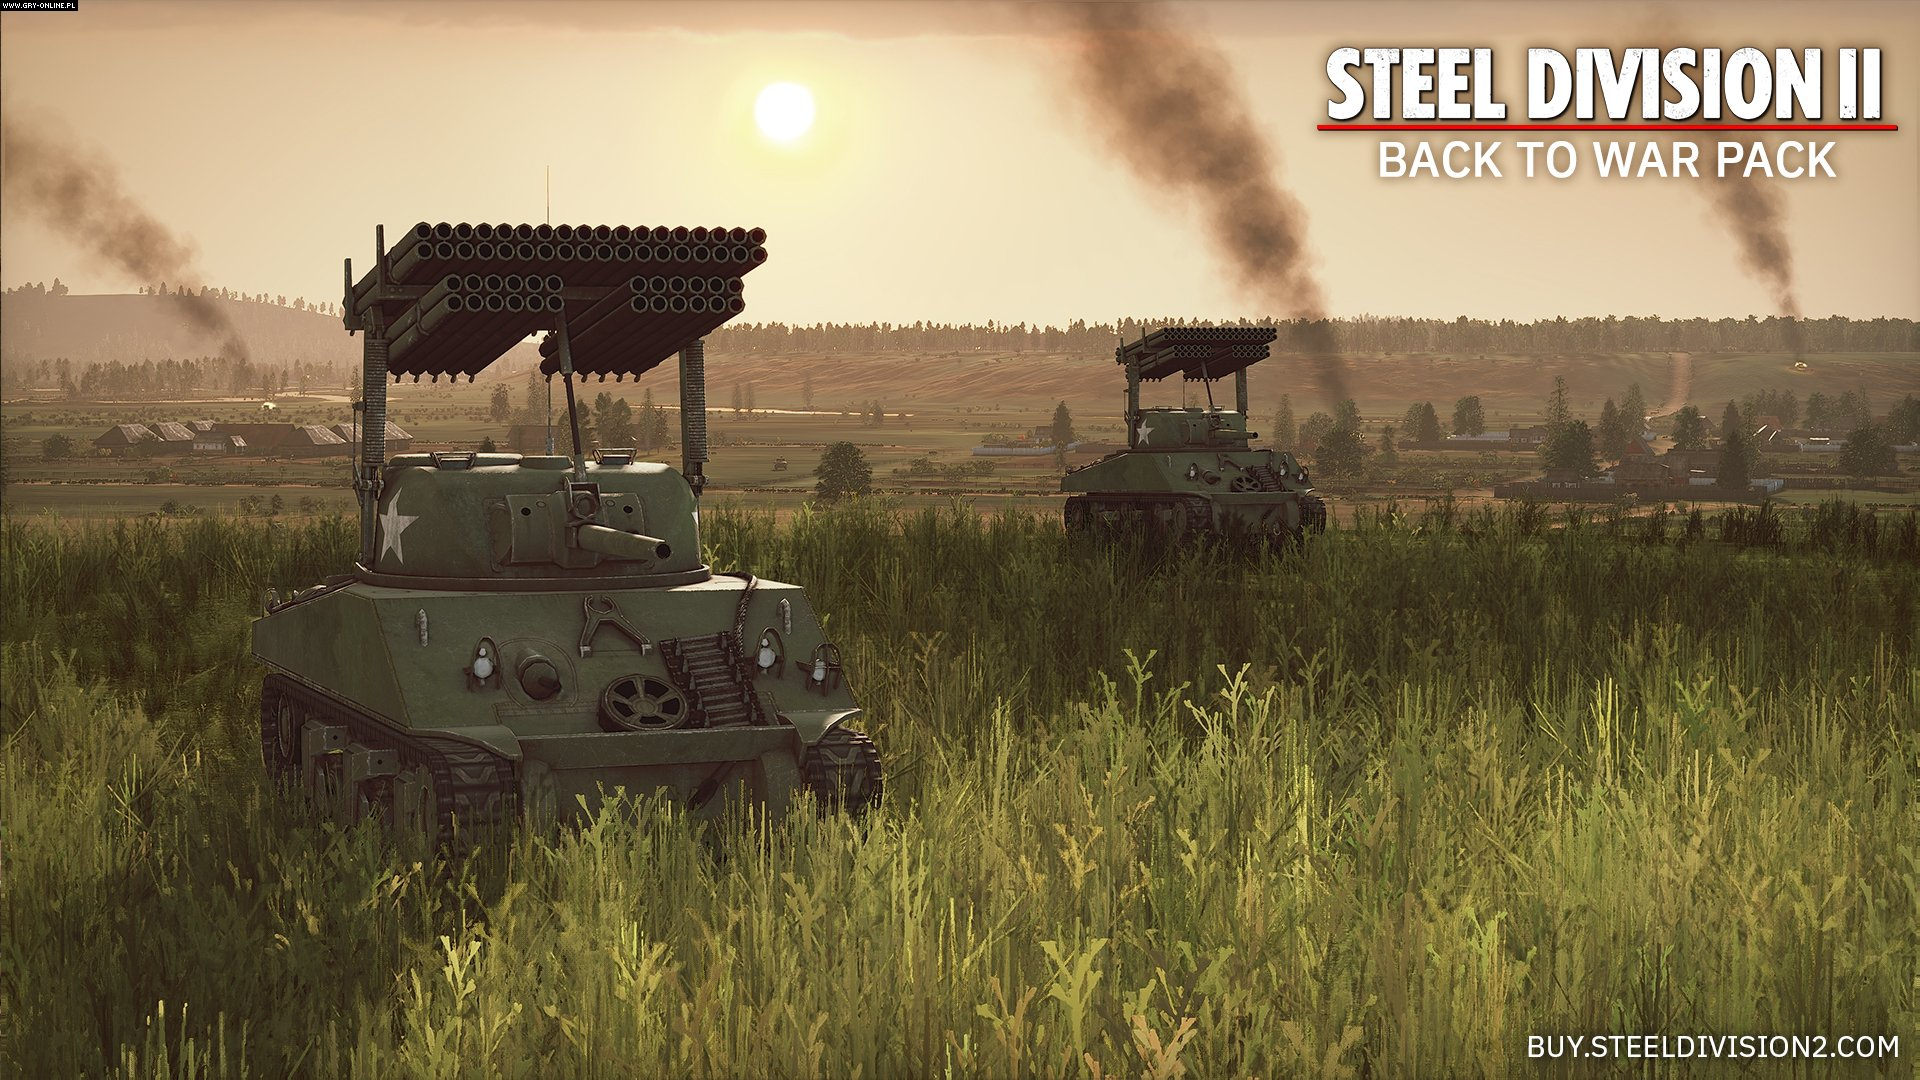 Steel Division 2 PC Games Image 4/28, Eugen Systems